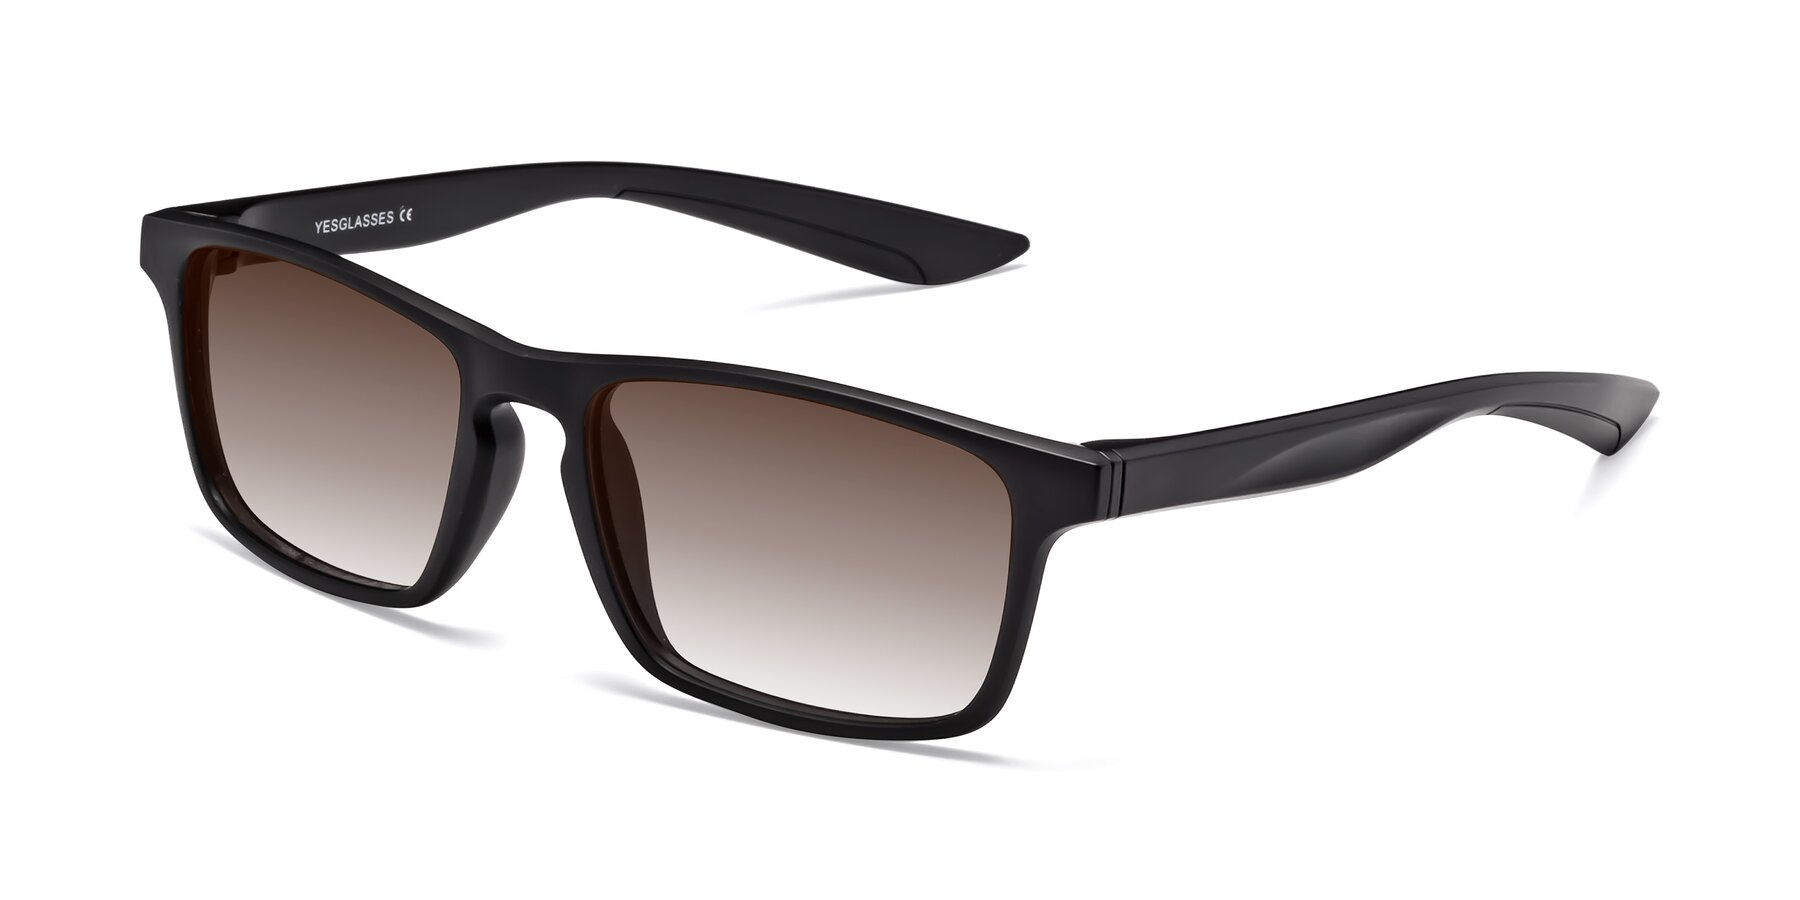 Angle of Passion in Matte Black with Brown Gradient Lenses